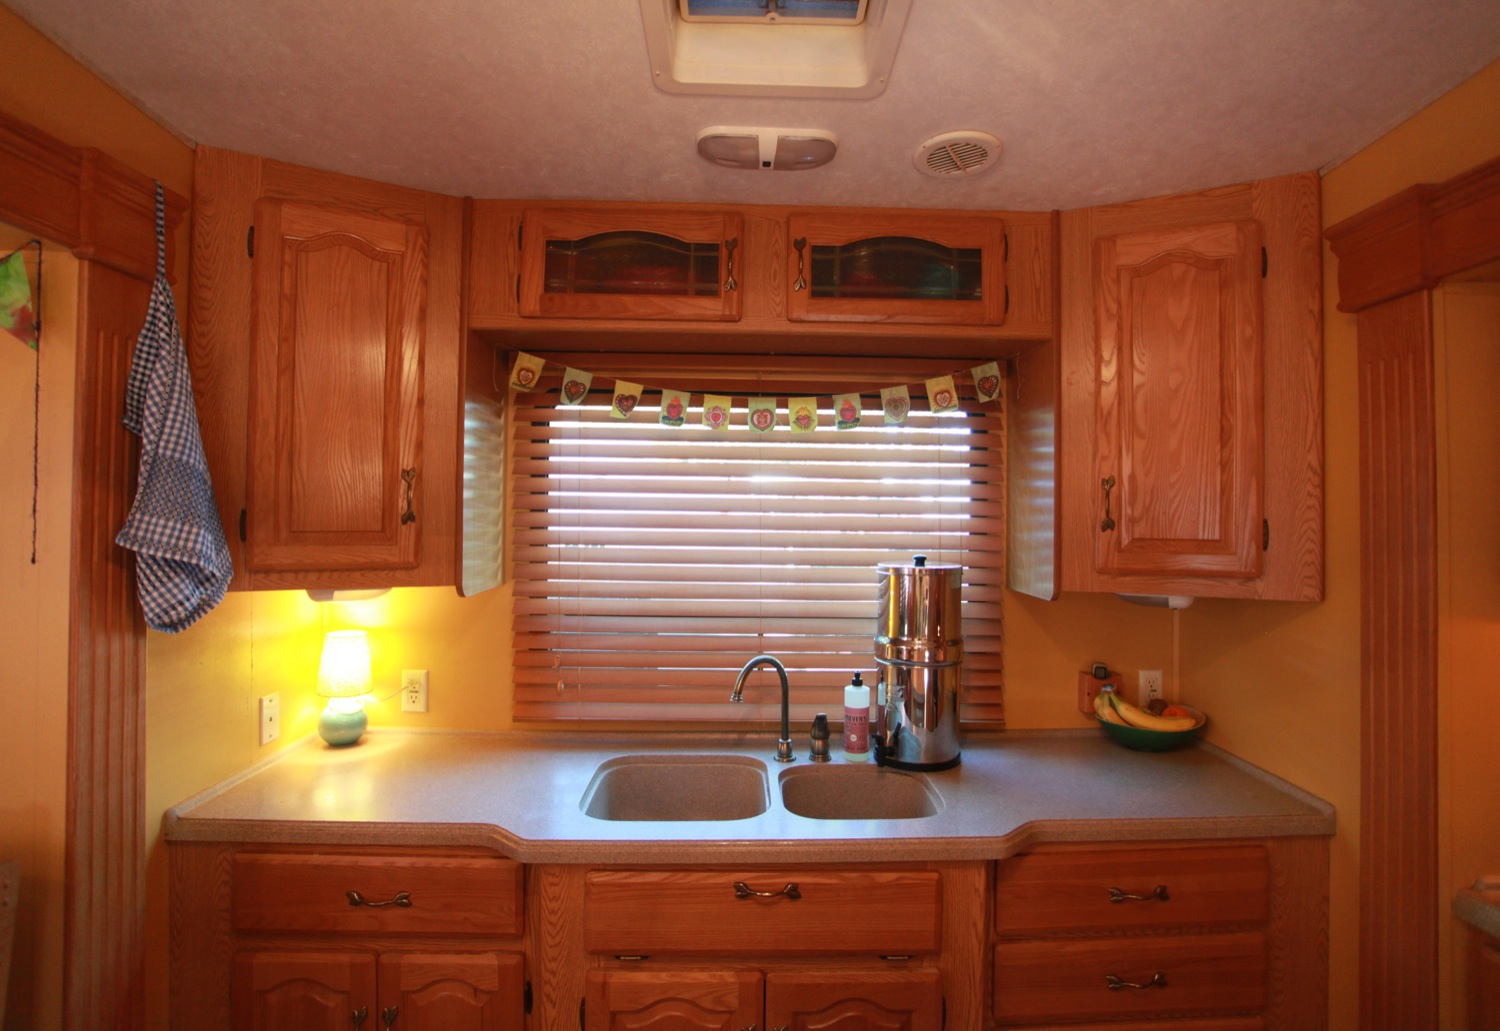 2005 Keystone Montana Fifth Wheel For Sale - Countertop.jpg